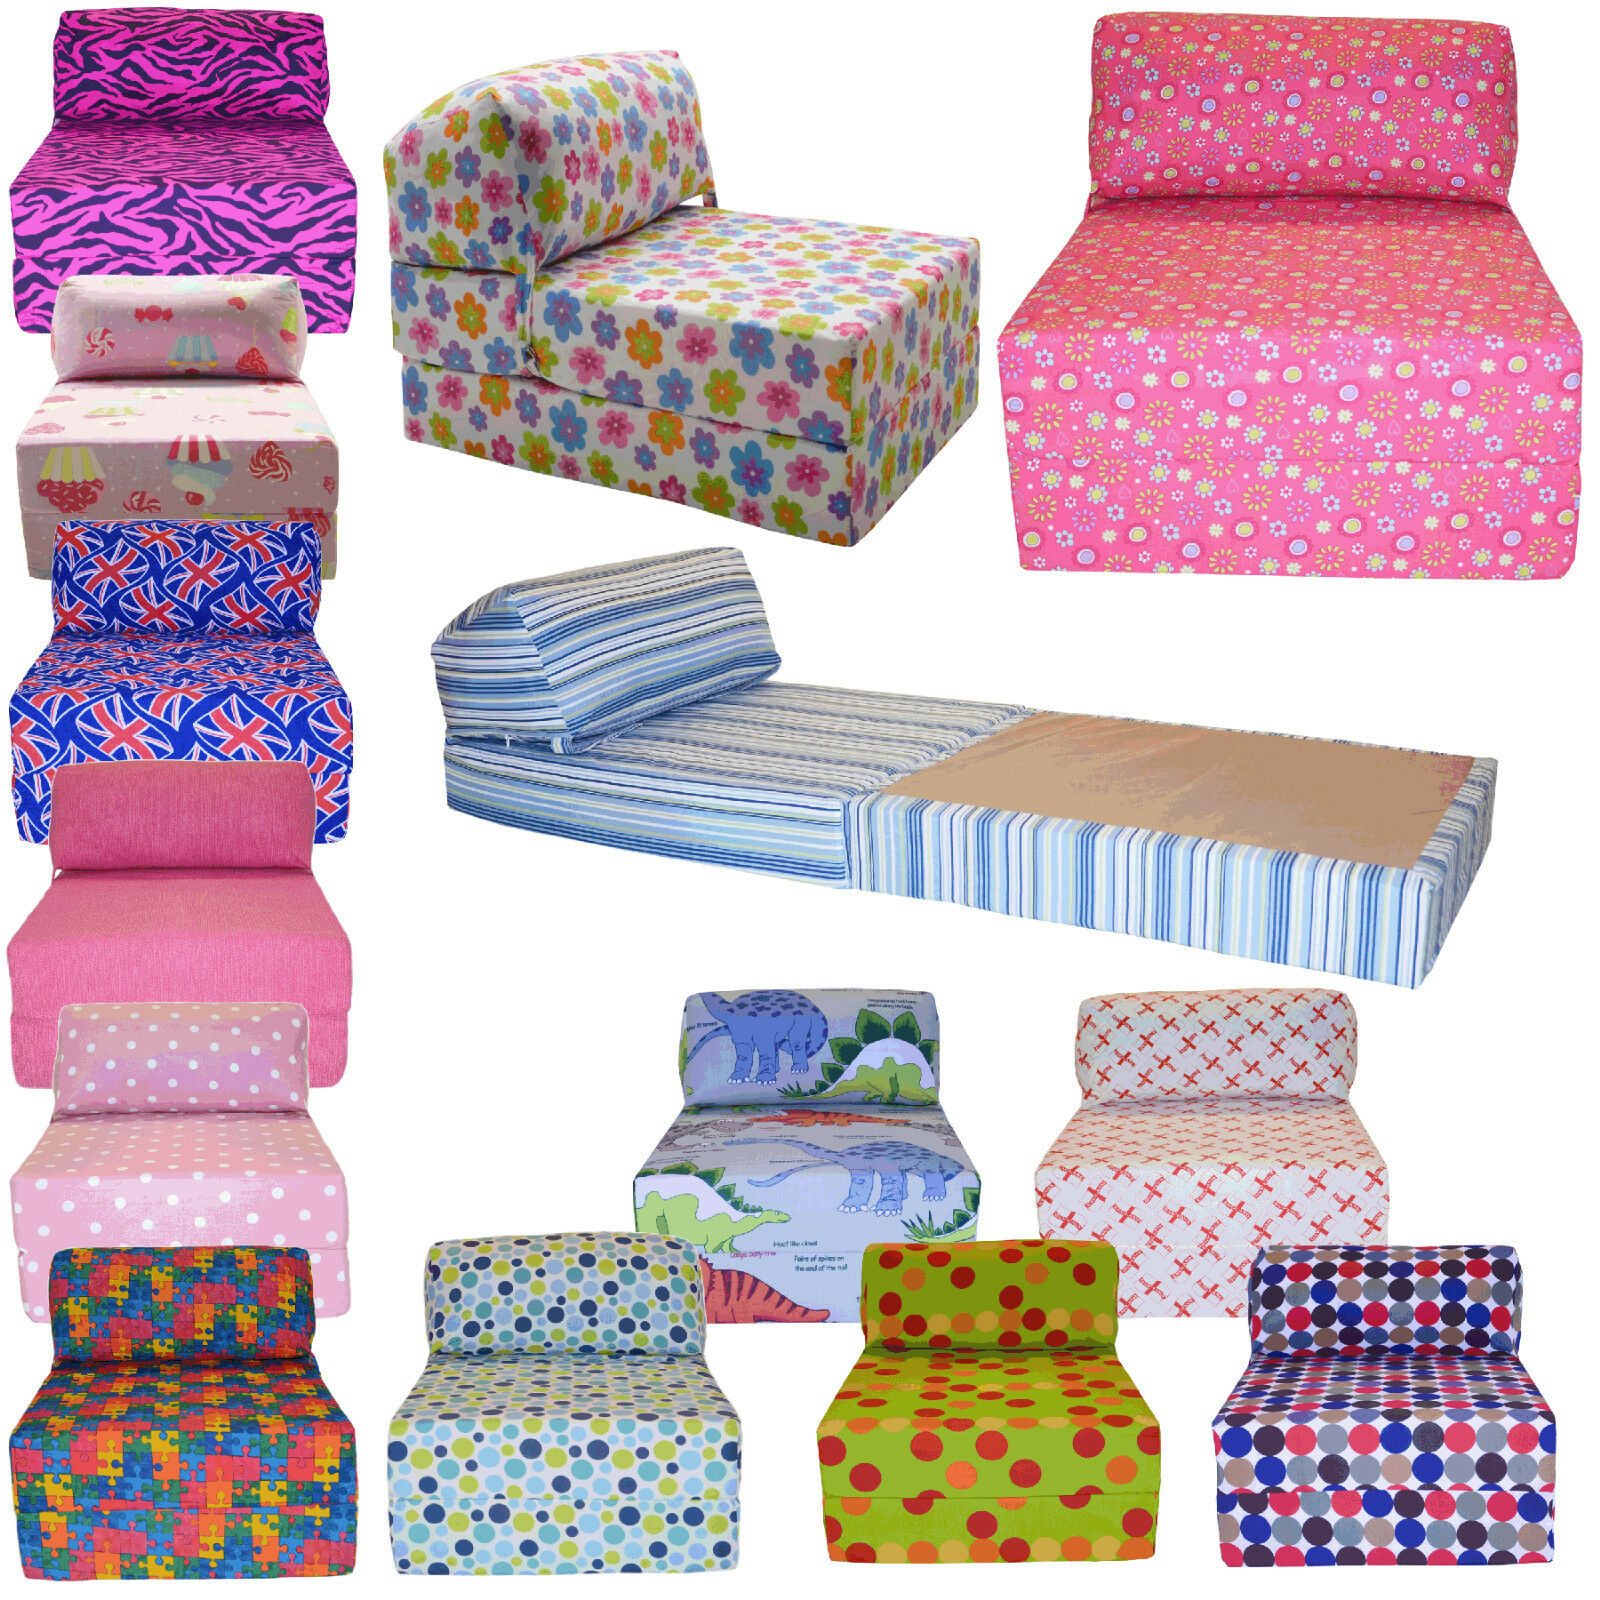 Fold Out Chair Cotton Print Single Chair Bed Z Guest Fold Out Futon Sofa